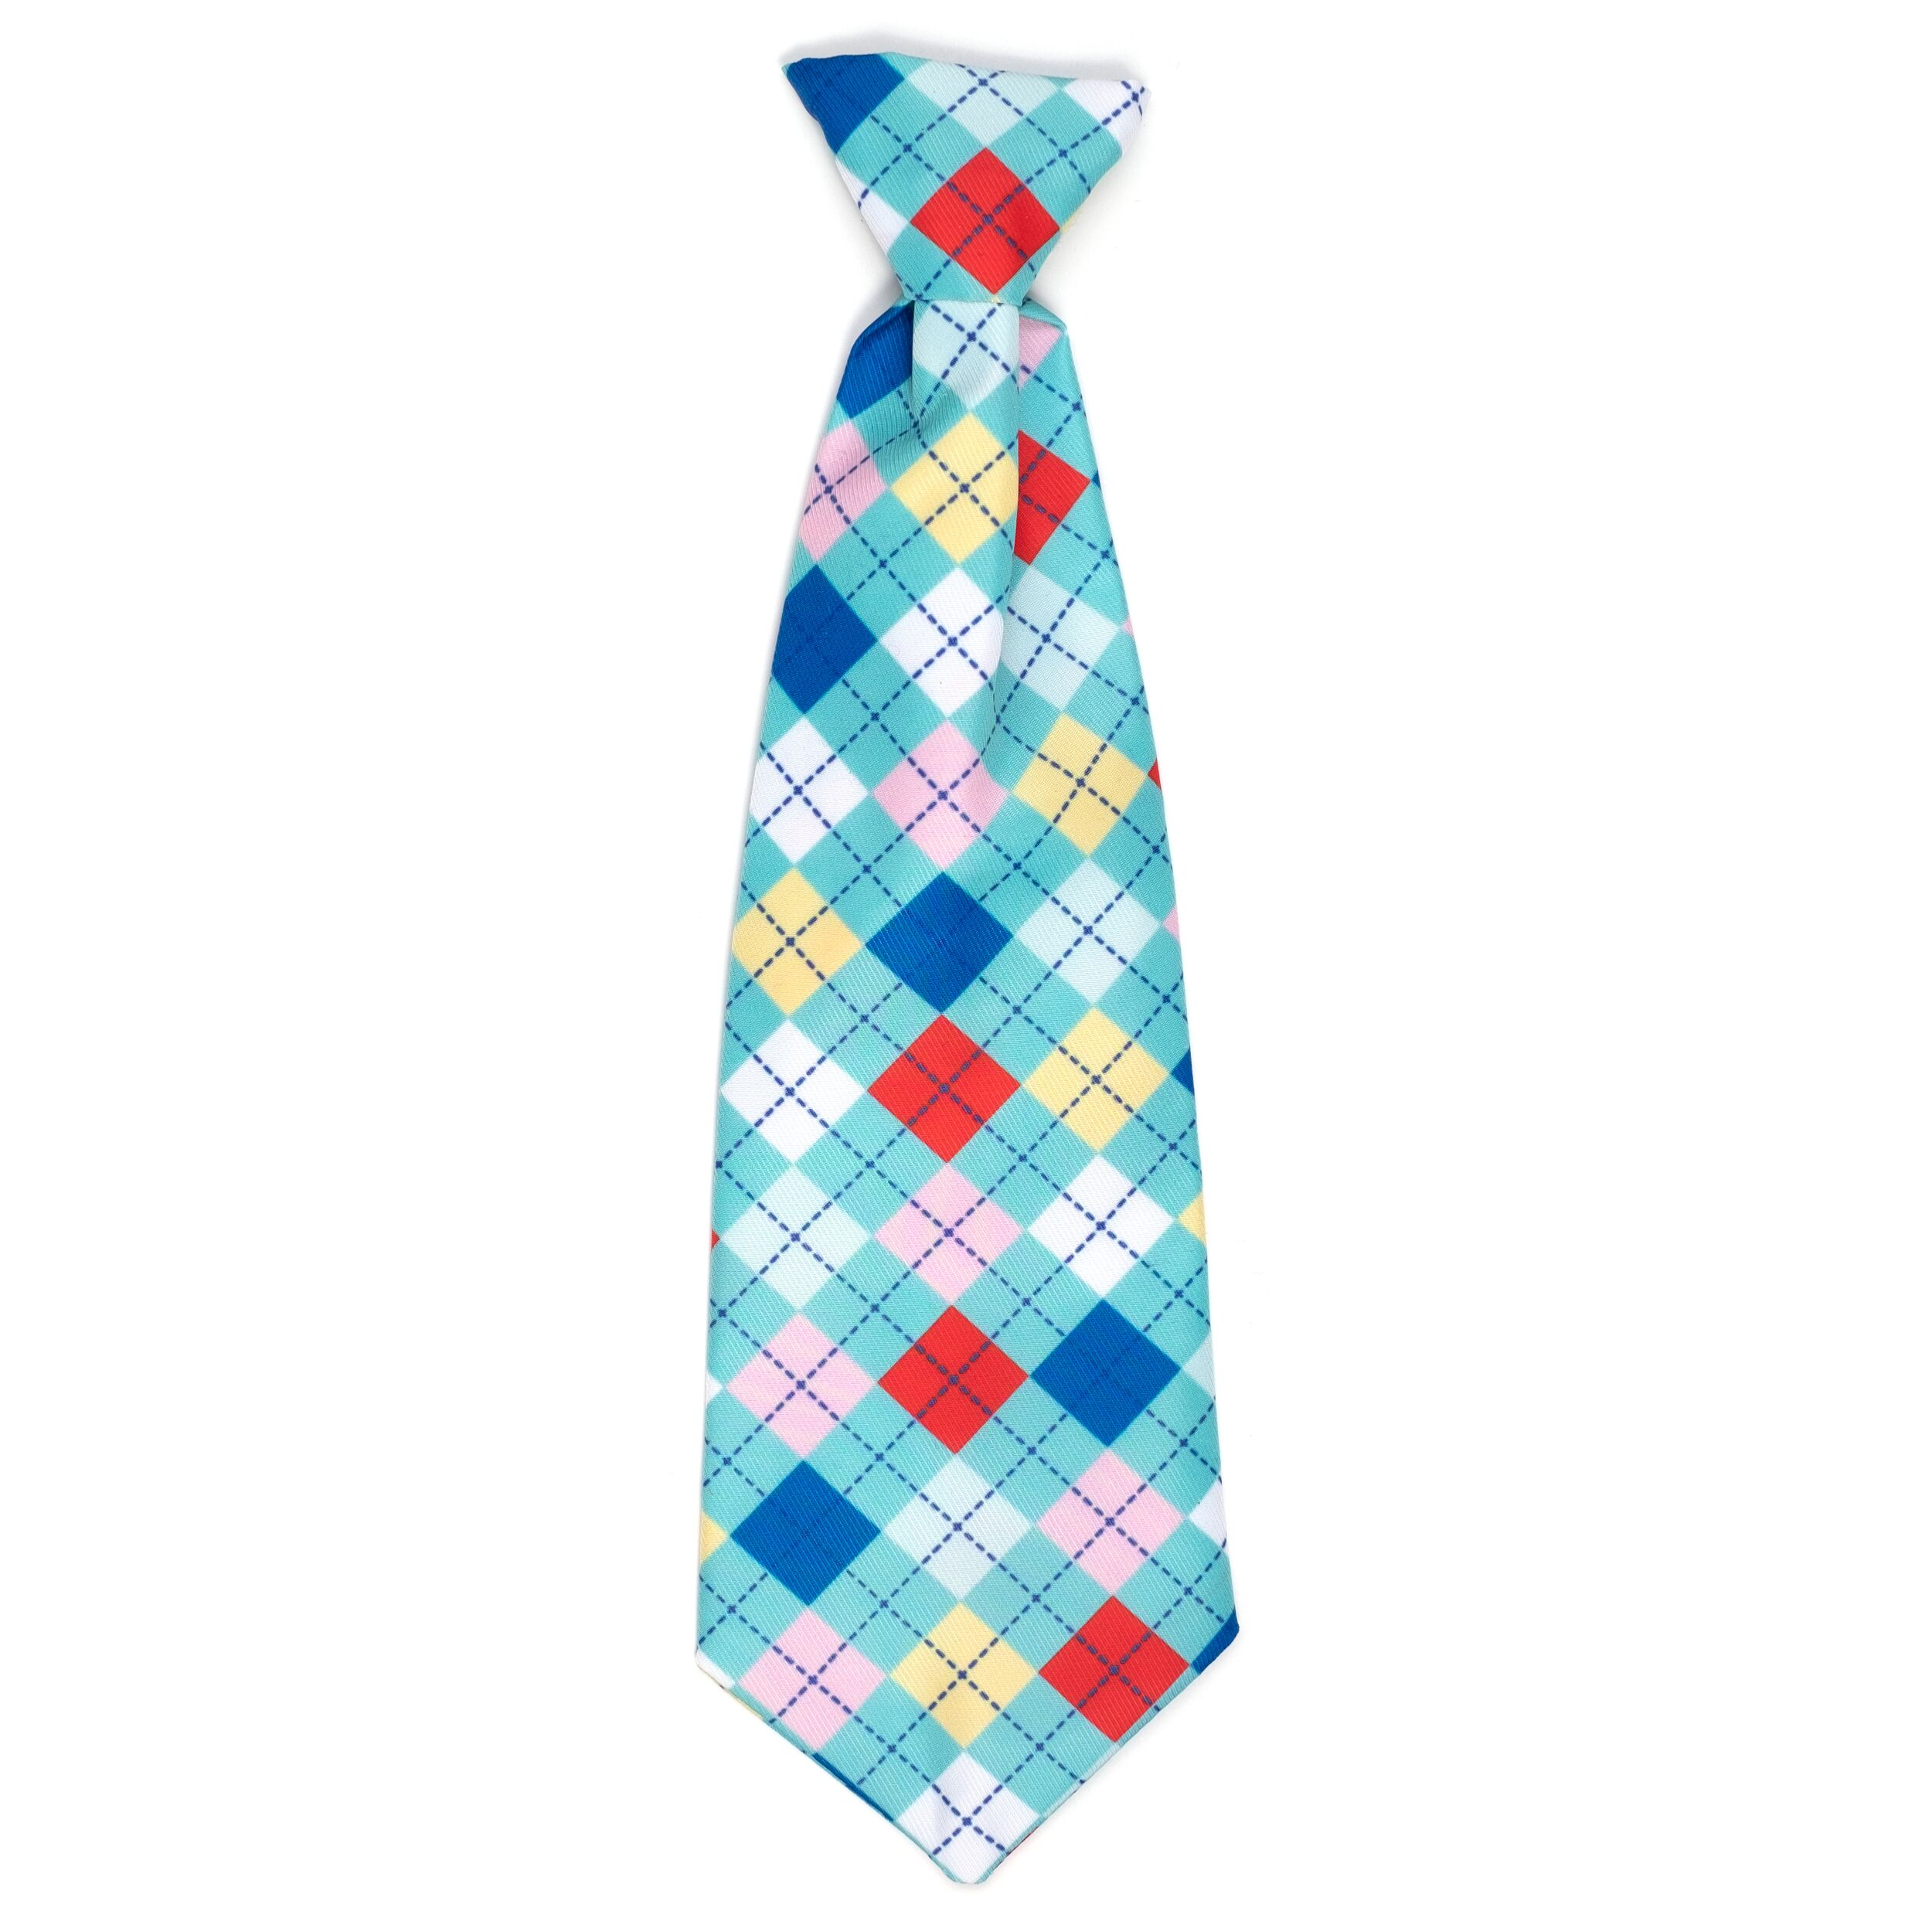 The Worthy Dog Neck Tie, Haberdashery, Large